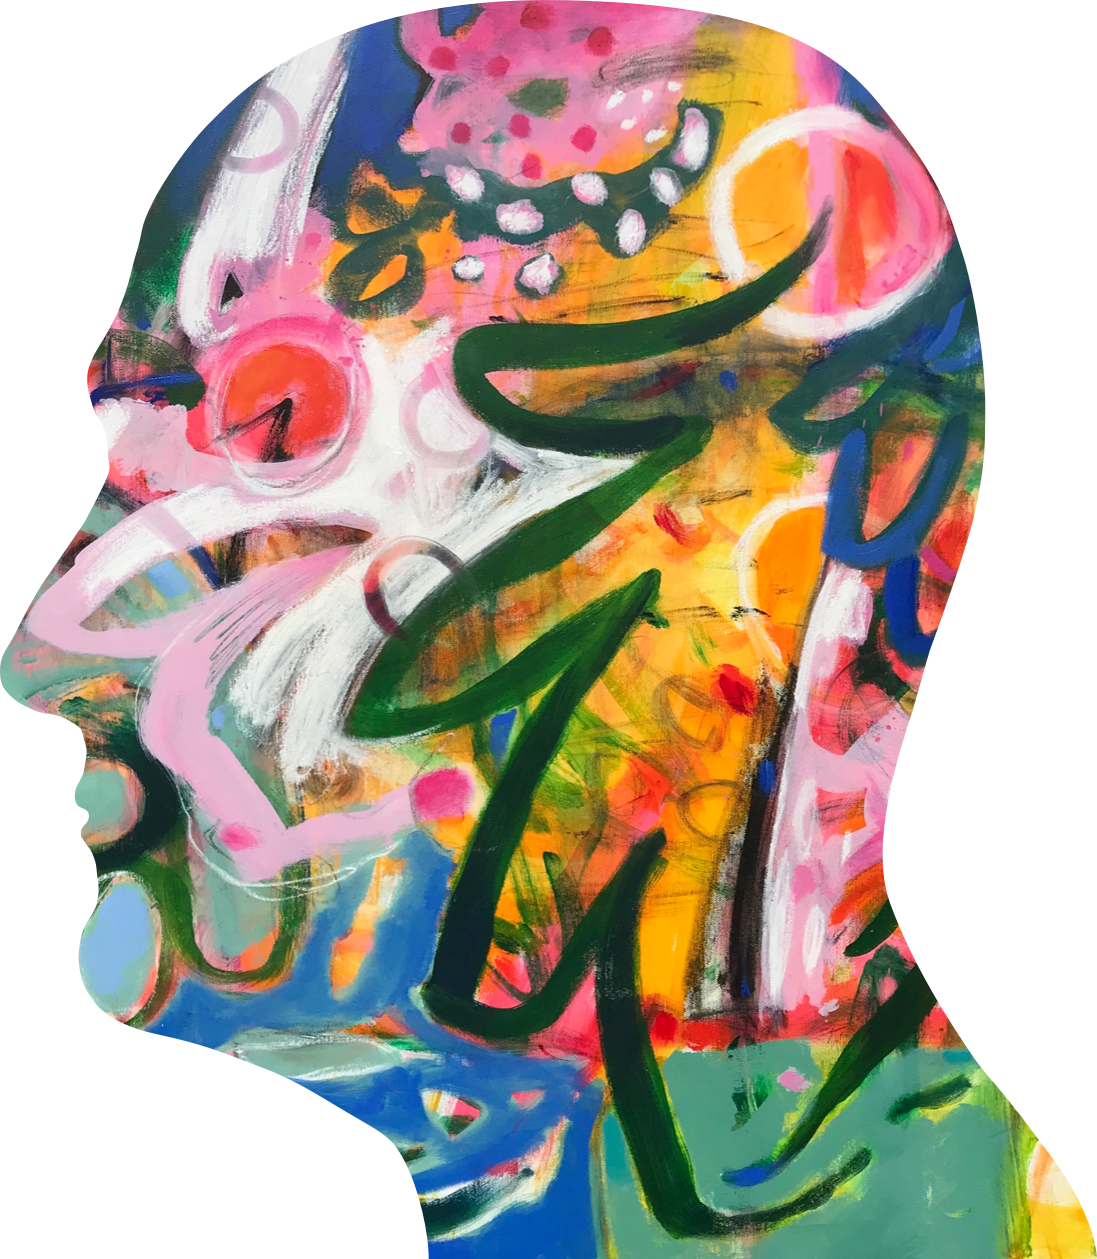 Silhouette of artist head with painting filled in